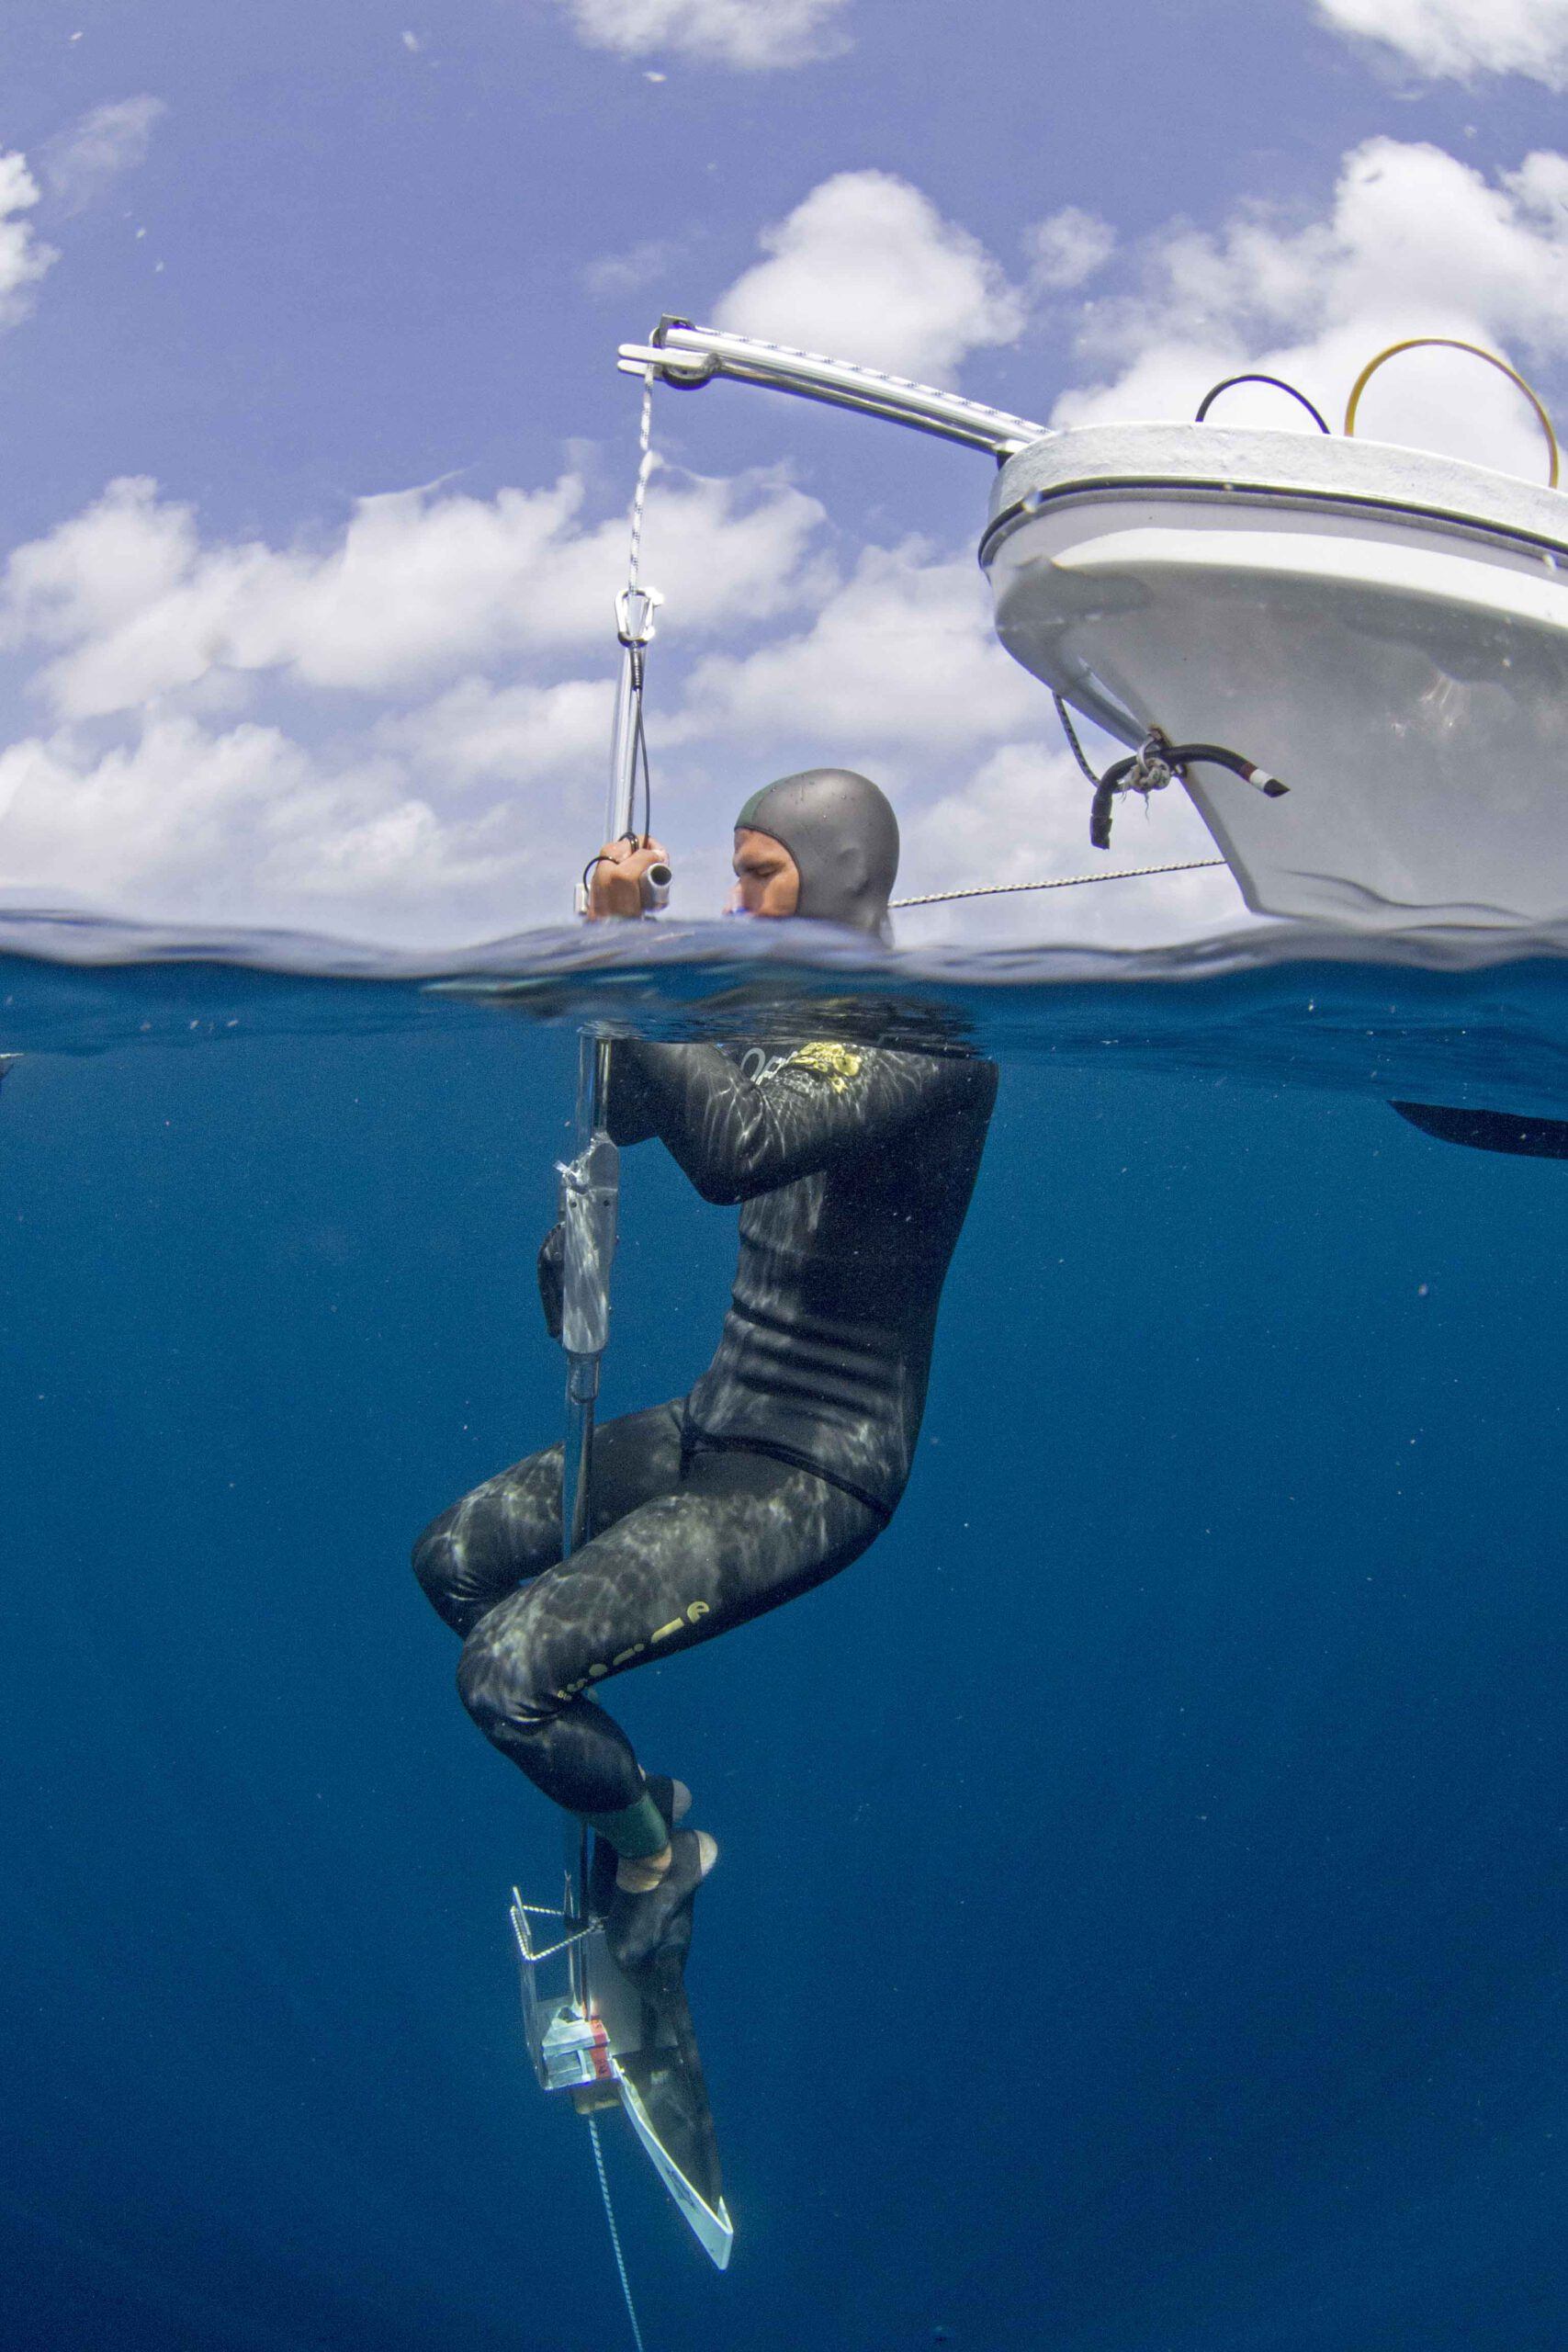 Freediving Bonaire Nature2experience, Carlos Coste, freediving Bonaire